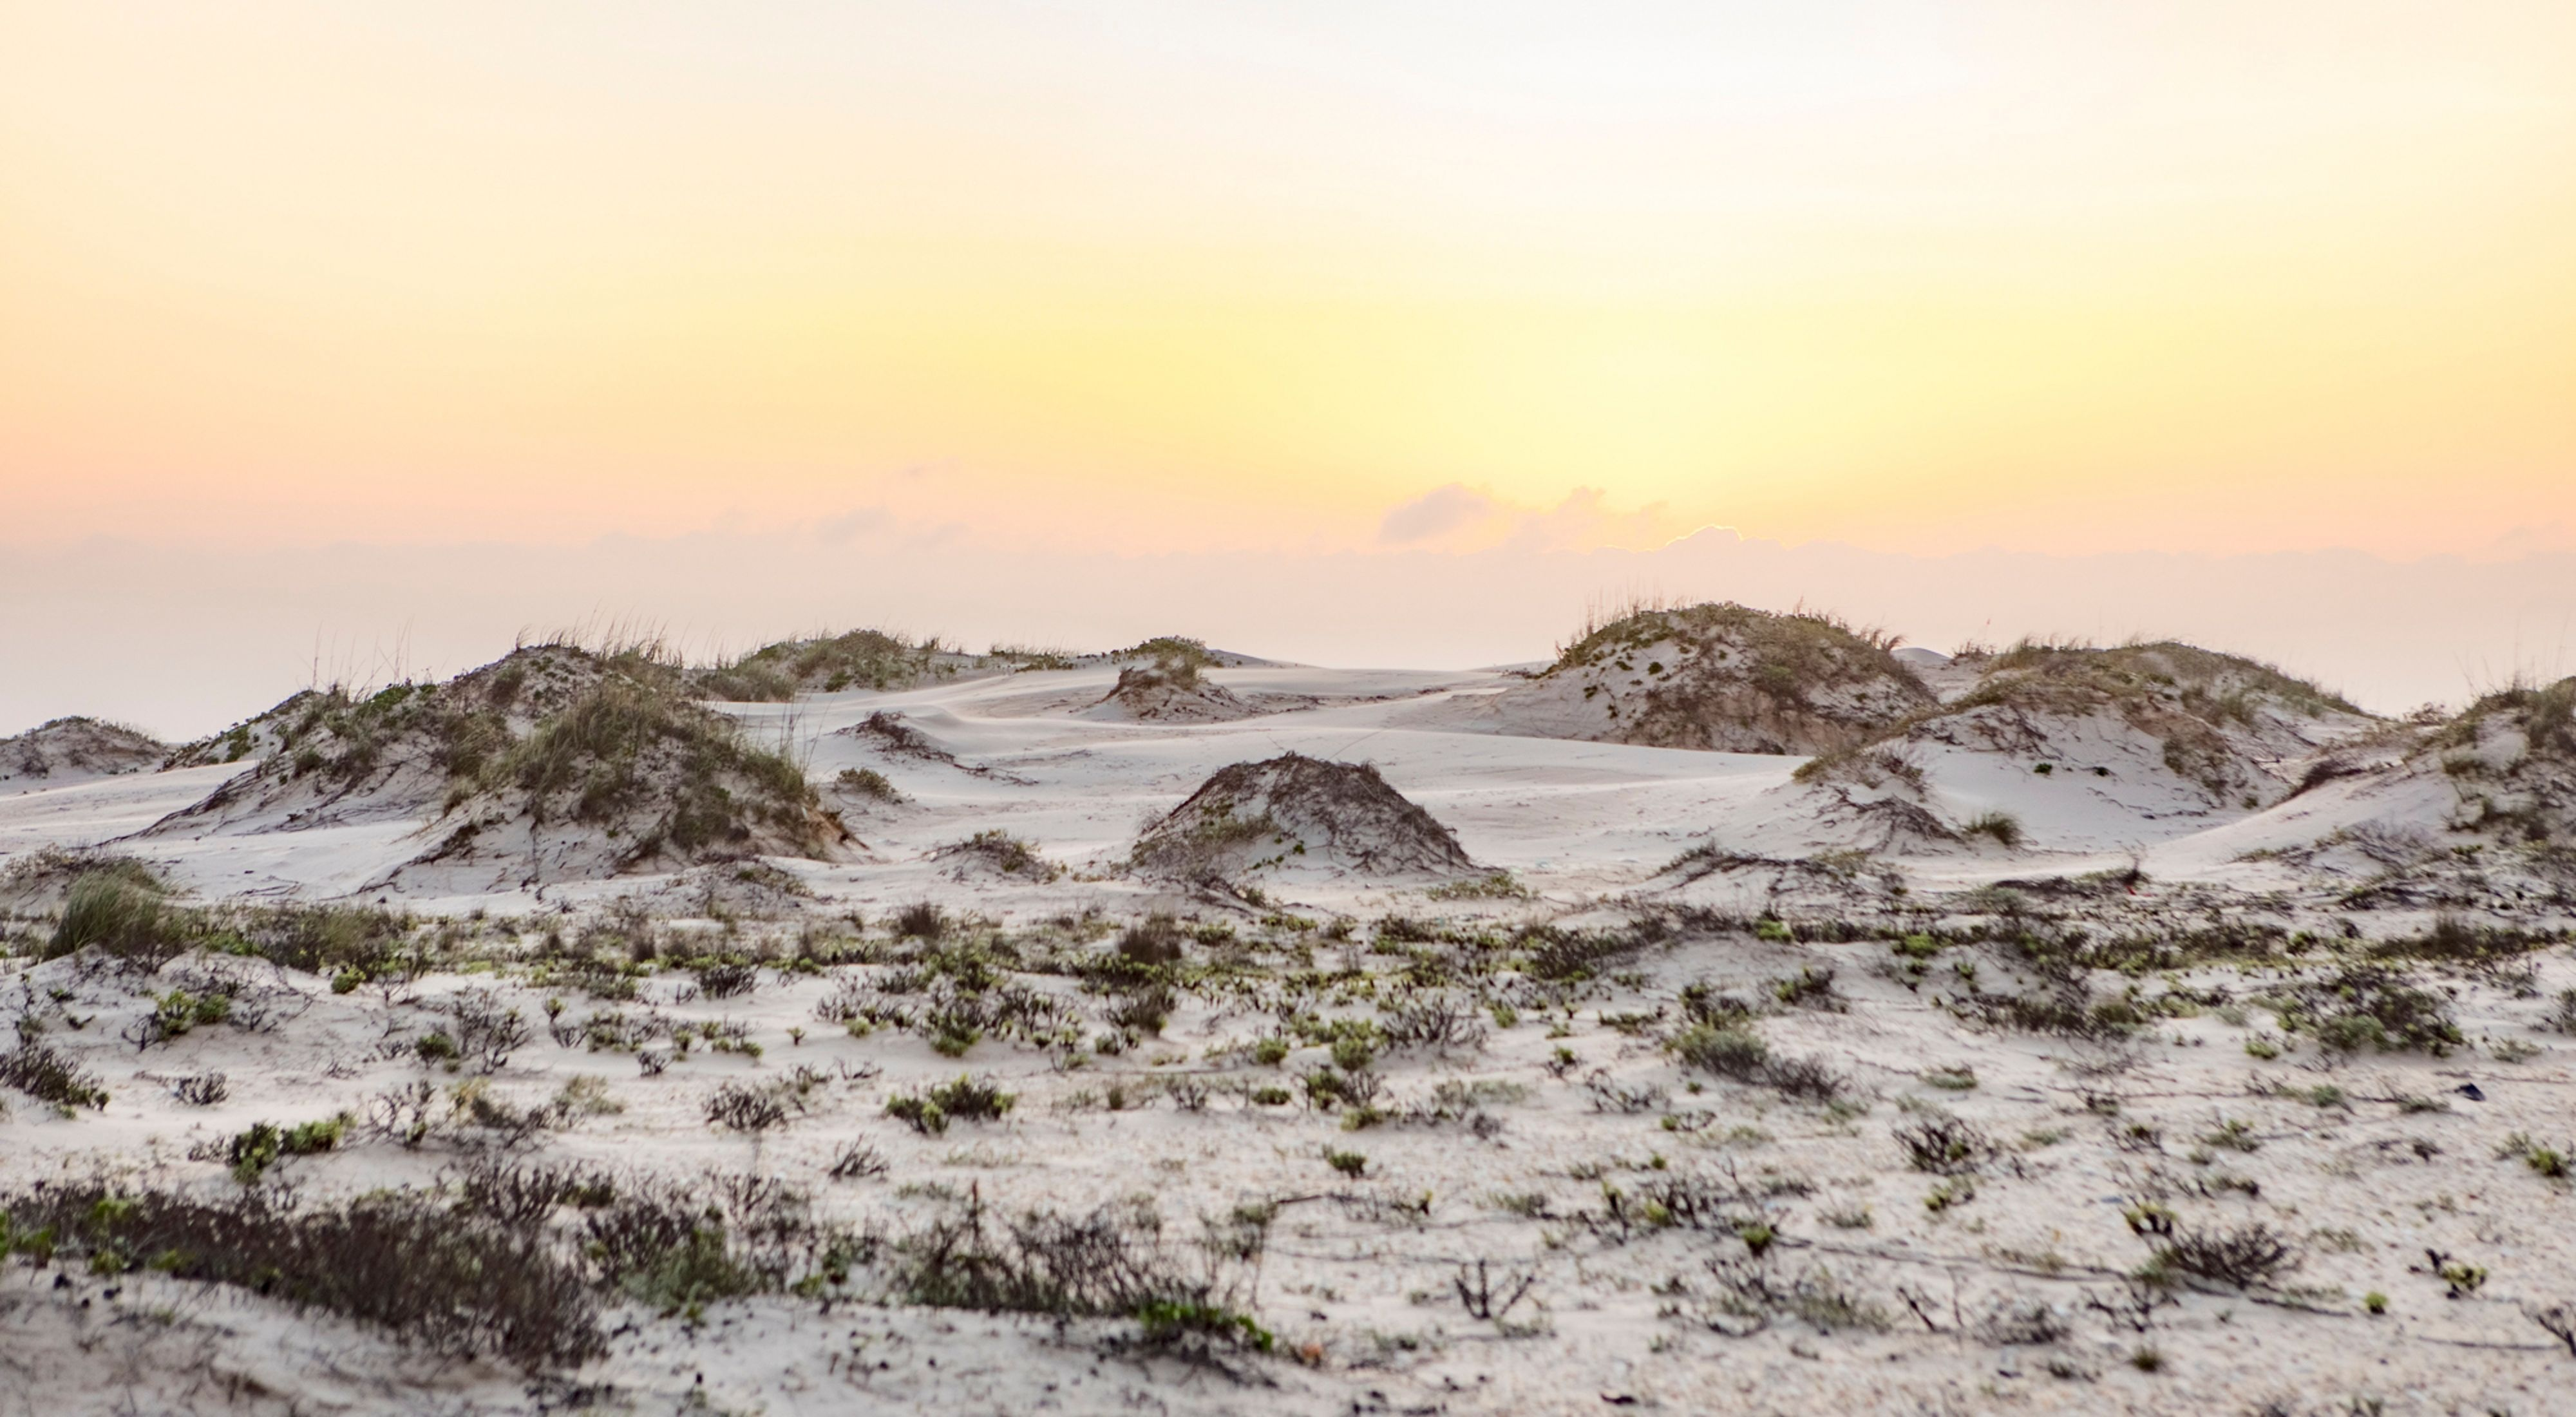 White sand dunes at sunset with some dune grasses growing on them.